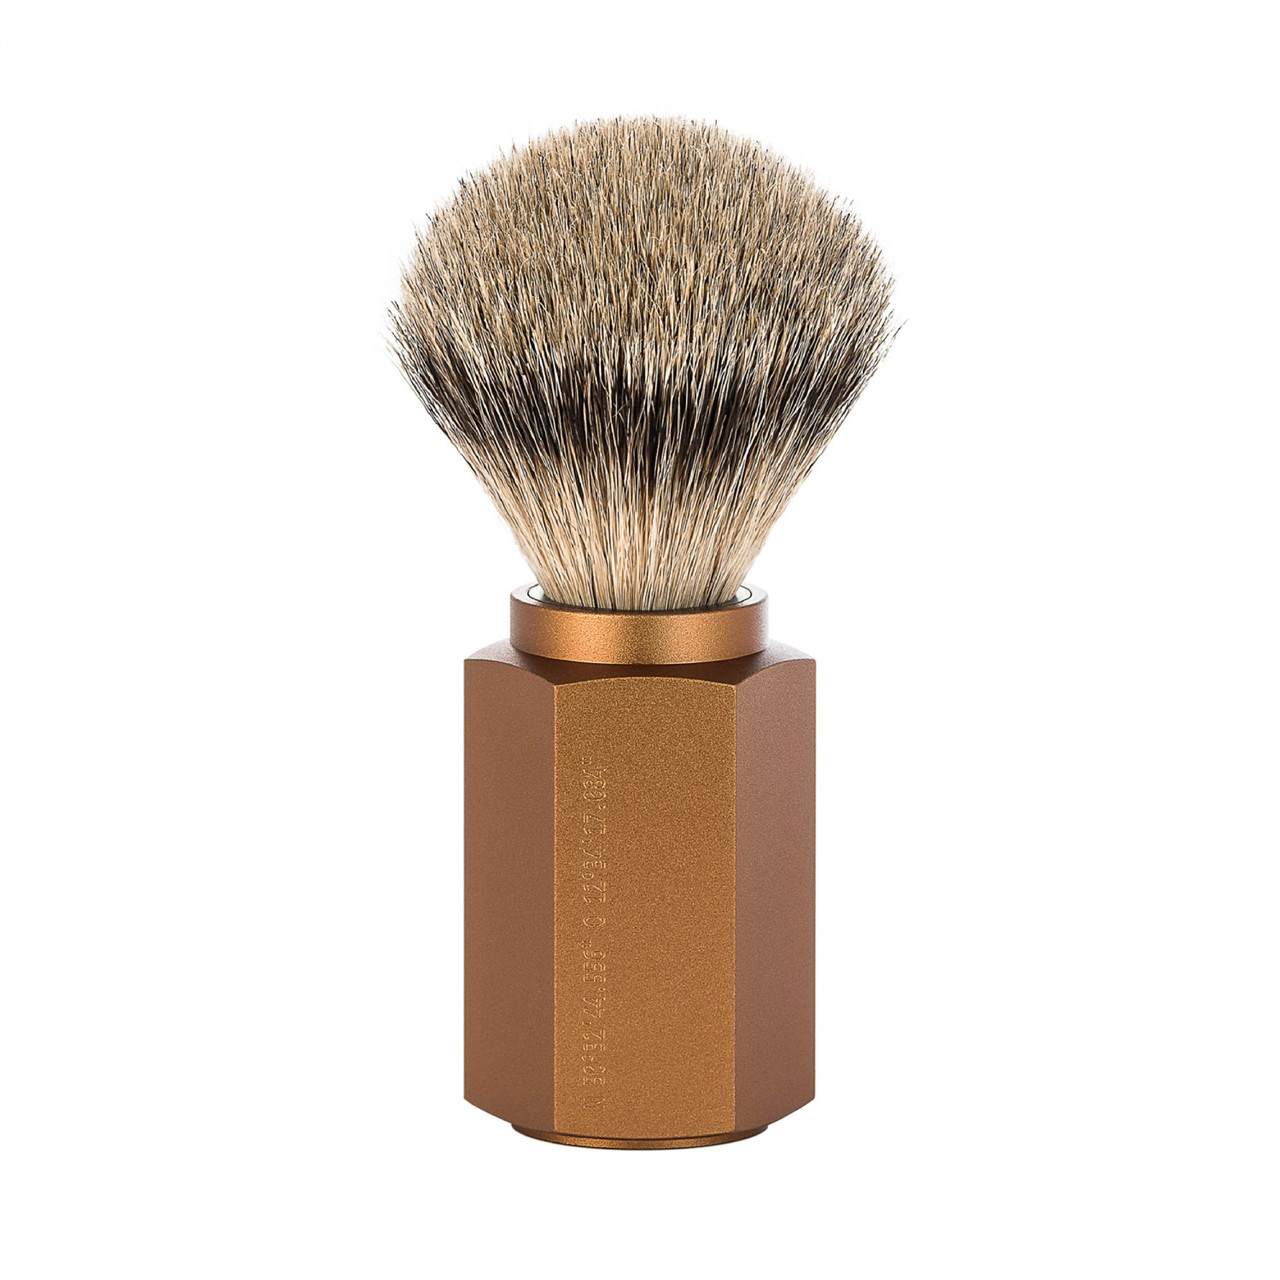 Image of   Mühle x Mark Braun Silvertip Badger Barberkost, 21 mm, Hexagon, Aluminium Bronze